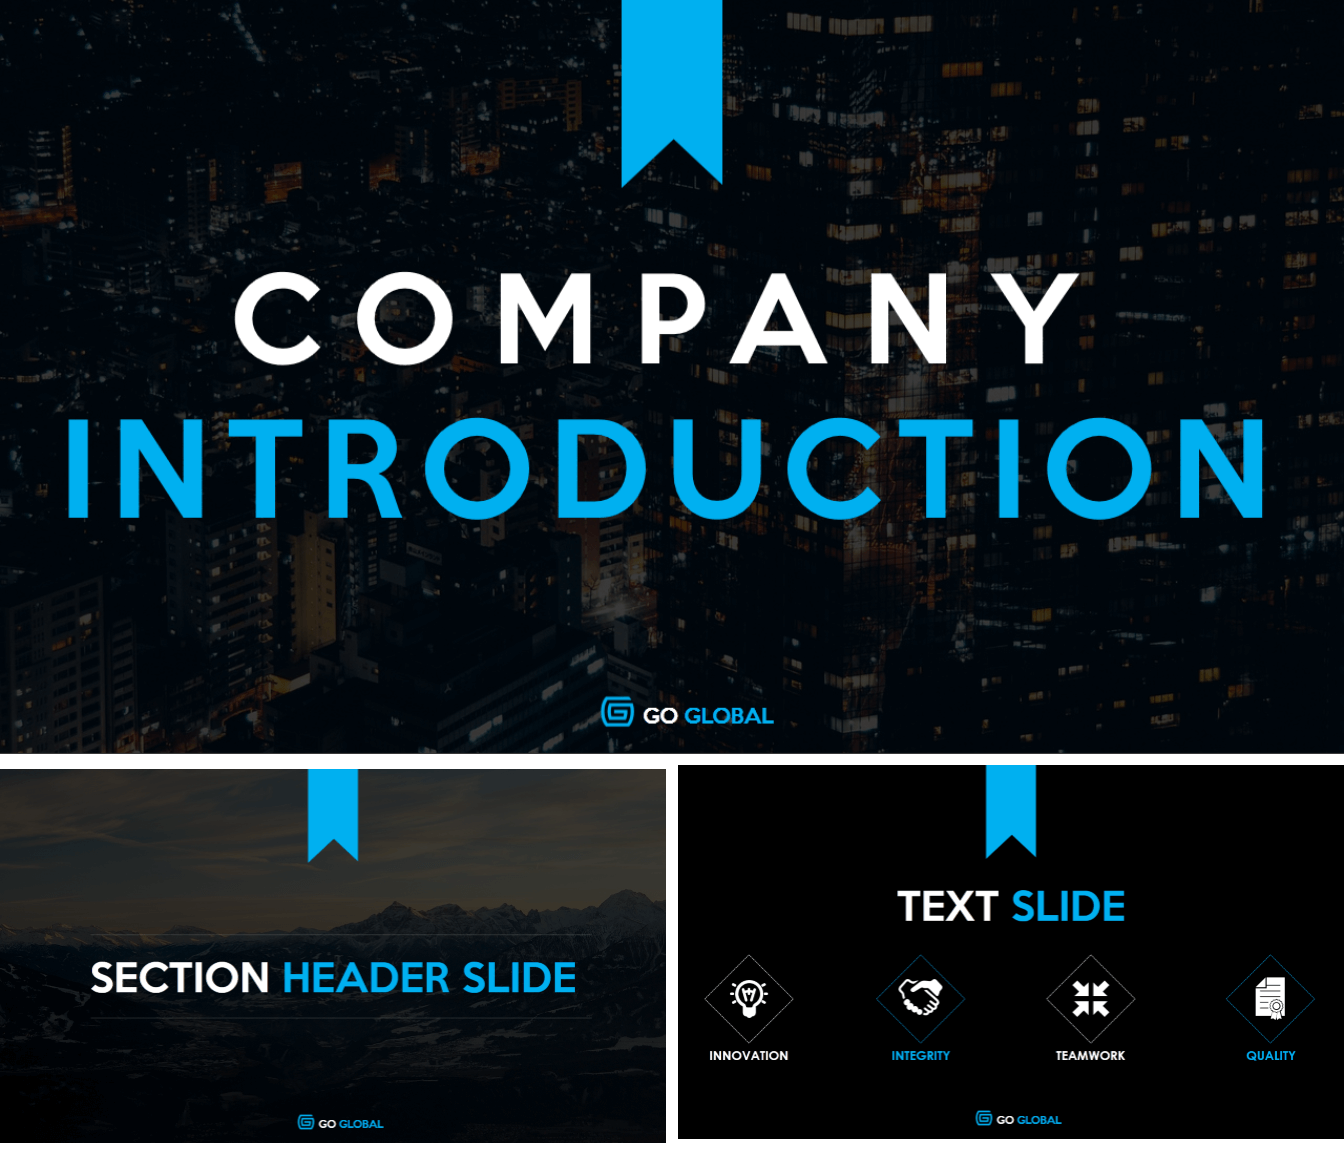 7 amazing powerpoint template designs for your company or personal keeping this fact in mind we have created a visually rich modern company introduction template for you heres the cover slide and two sample text slides toneelgroepblik Gallery